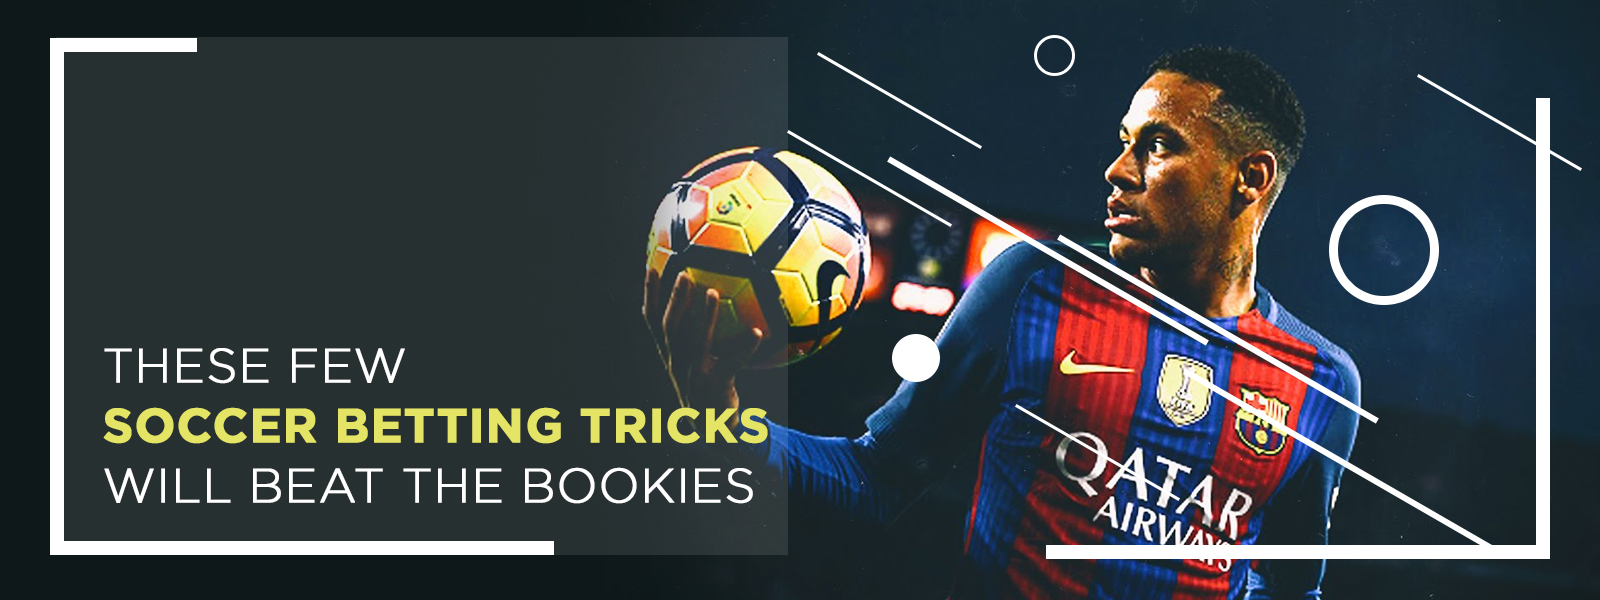 These Few Soccer Betting Tricks Will Beat the Bookies